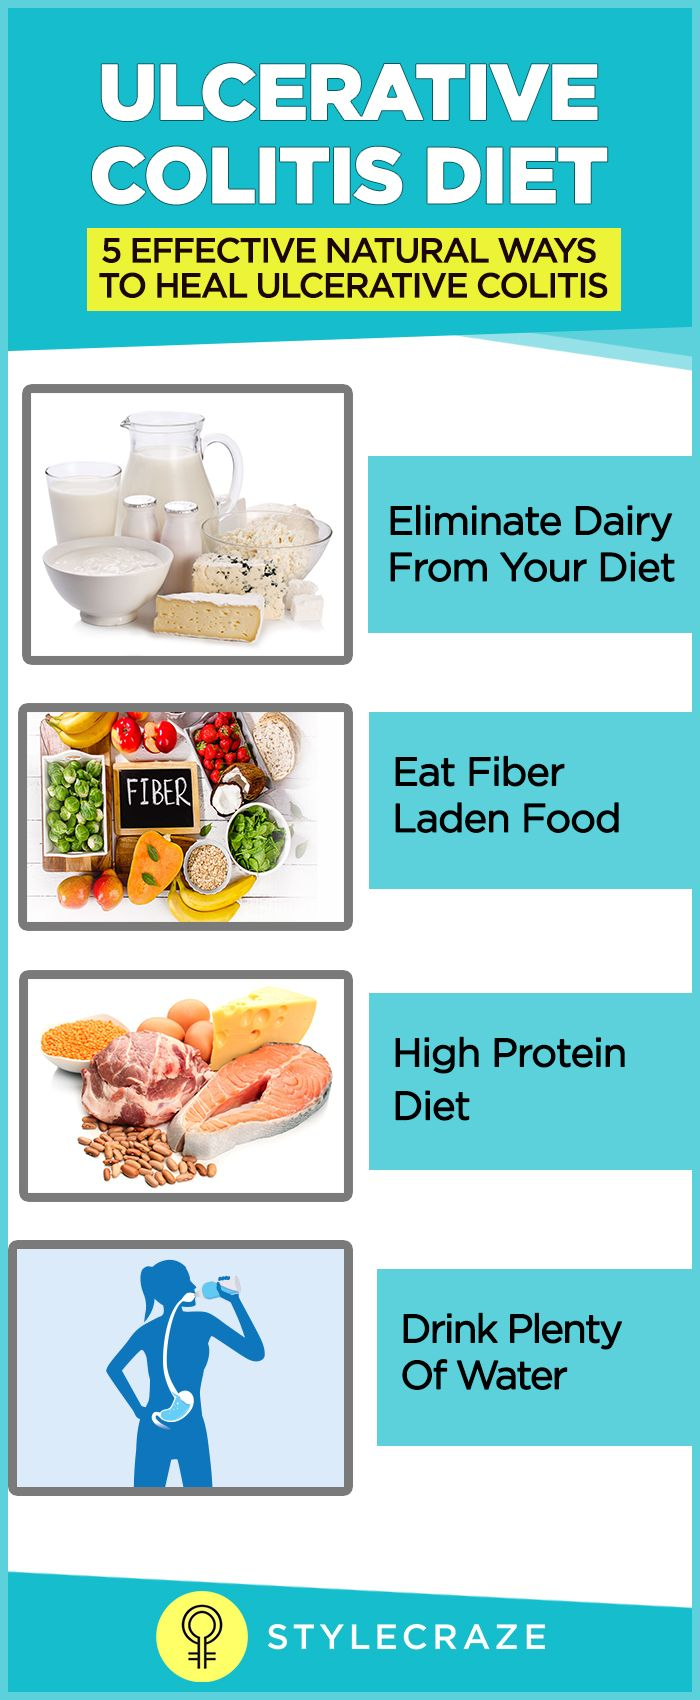 Ulcerative Colitis Diet Foods To Eat And Avoid With Diet Chart Ulcerative Colitis Diet Ulcerative Colitis Recipes Colitis Diet